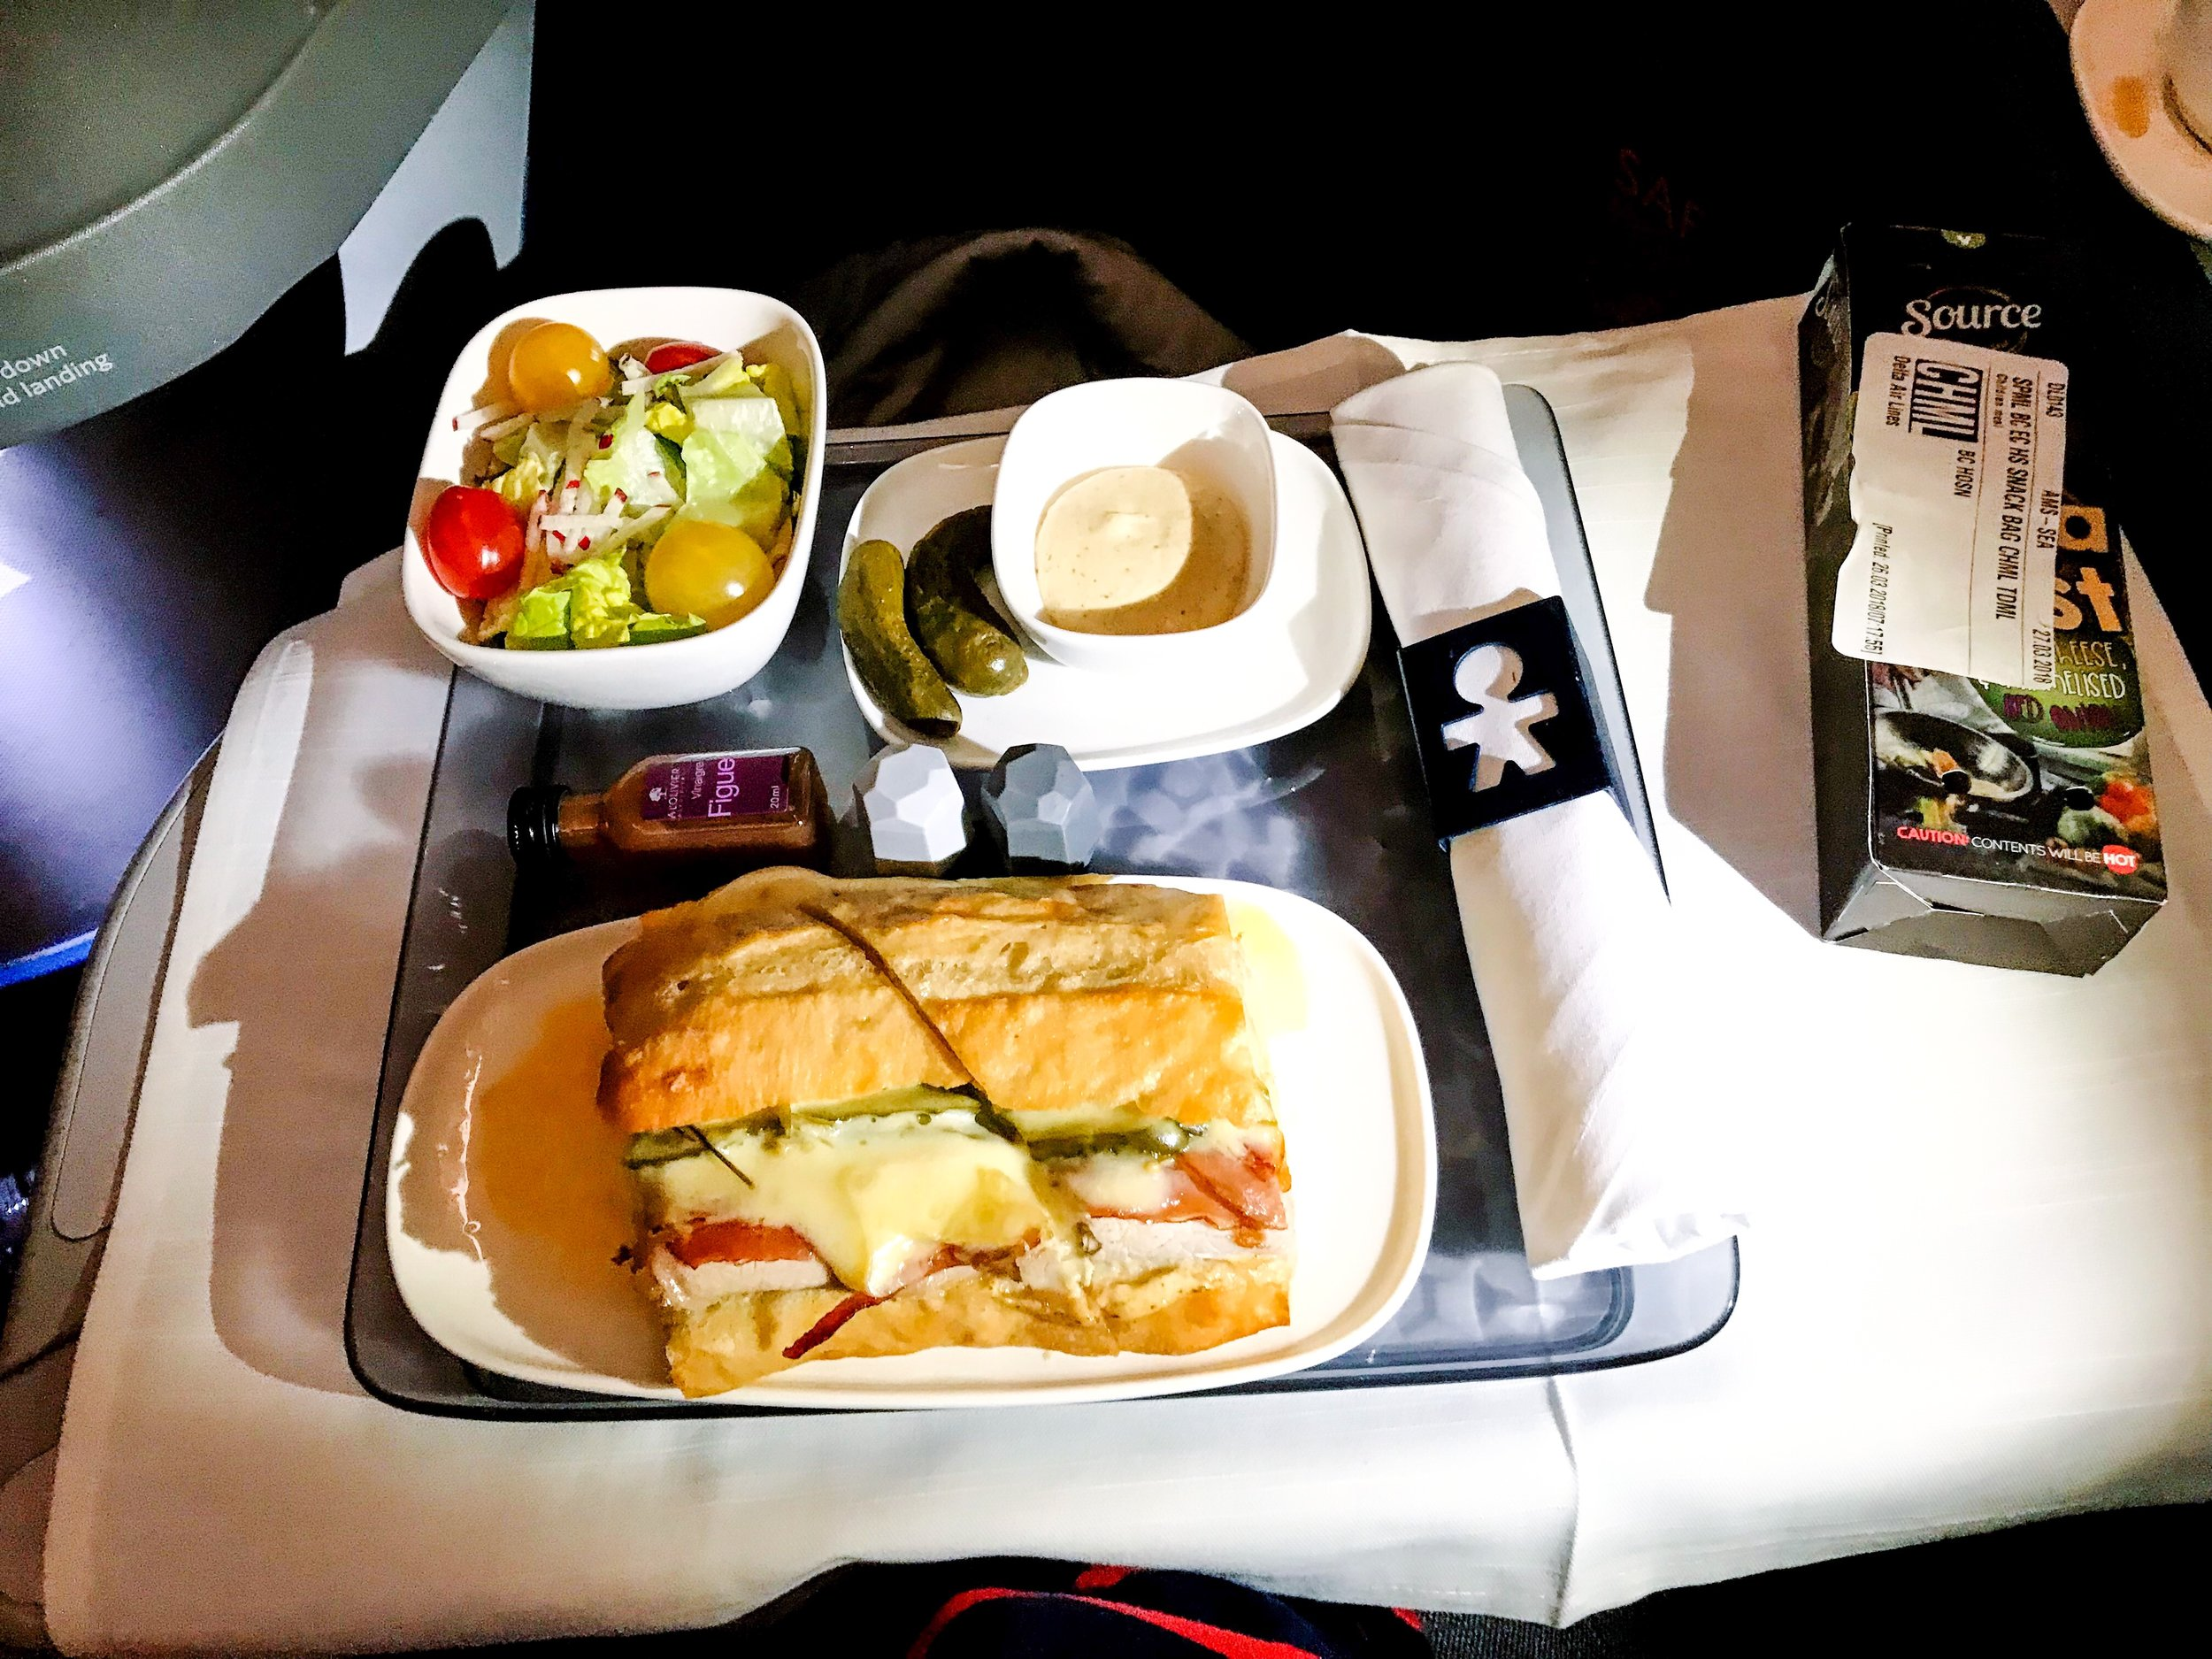 The second meal was more consistent with a domestic First Class meal, but was still very tasty.